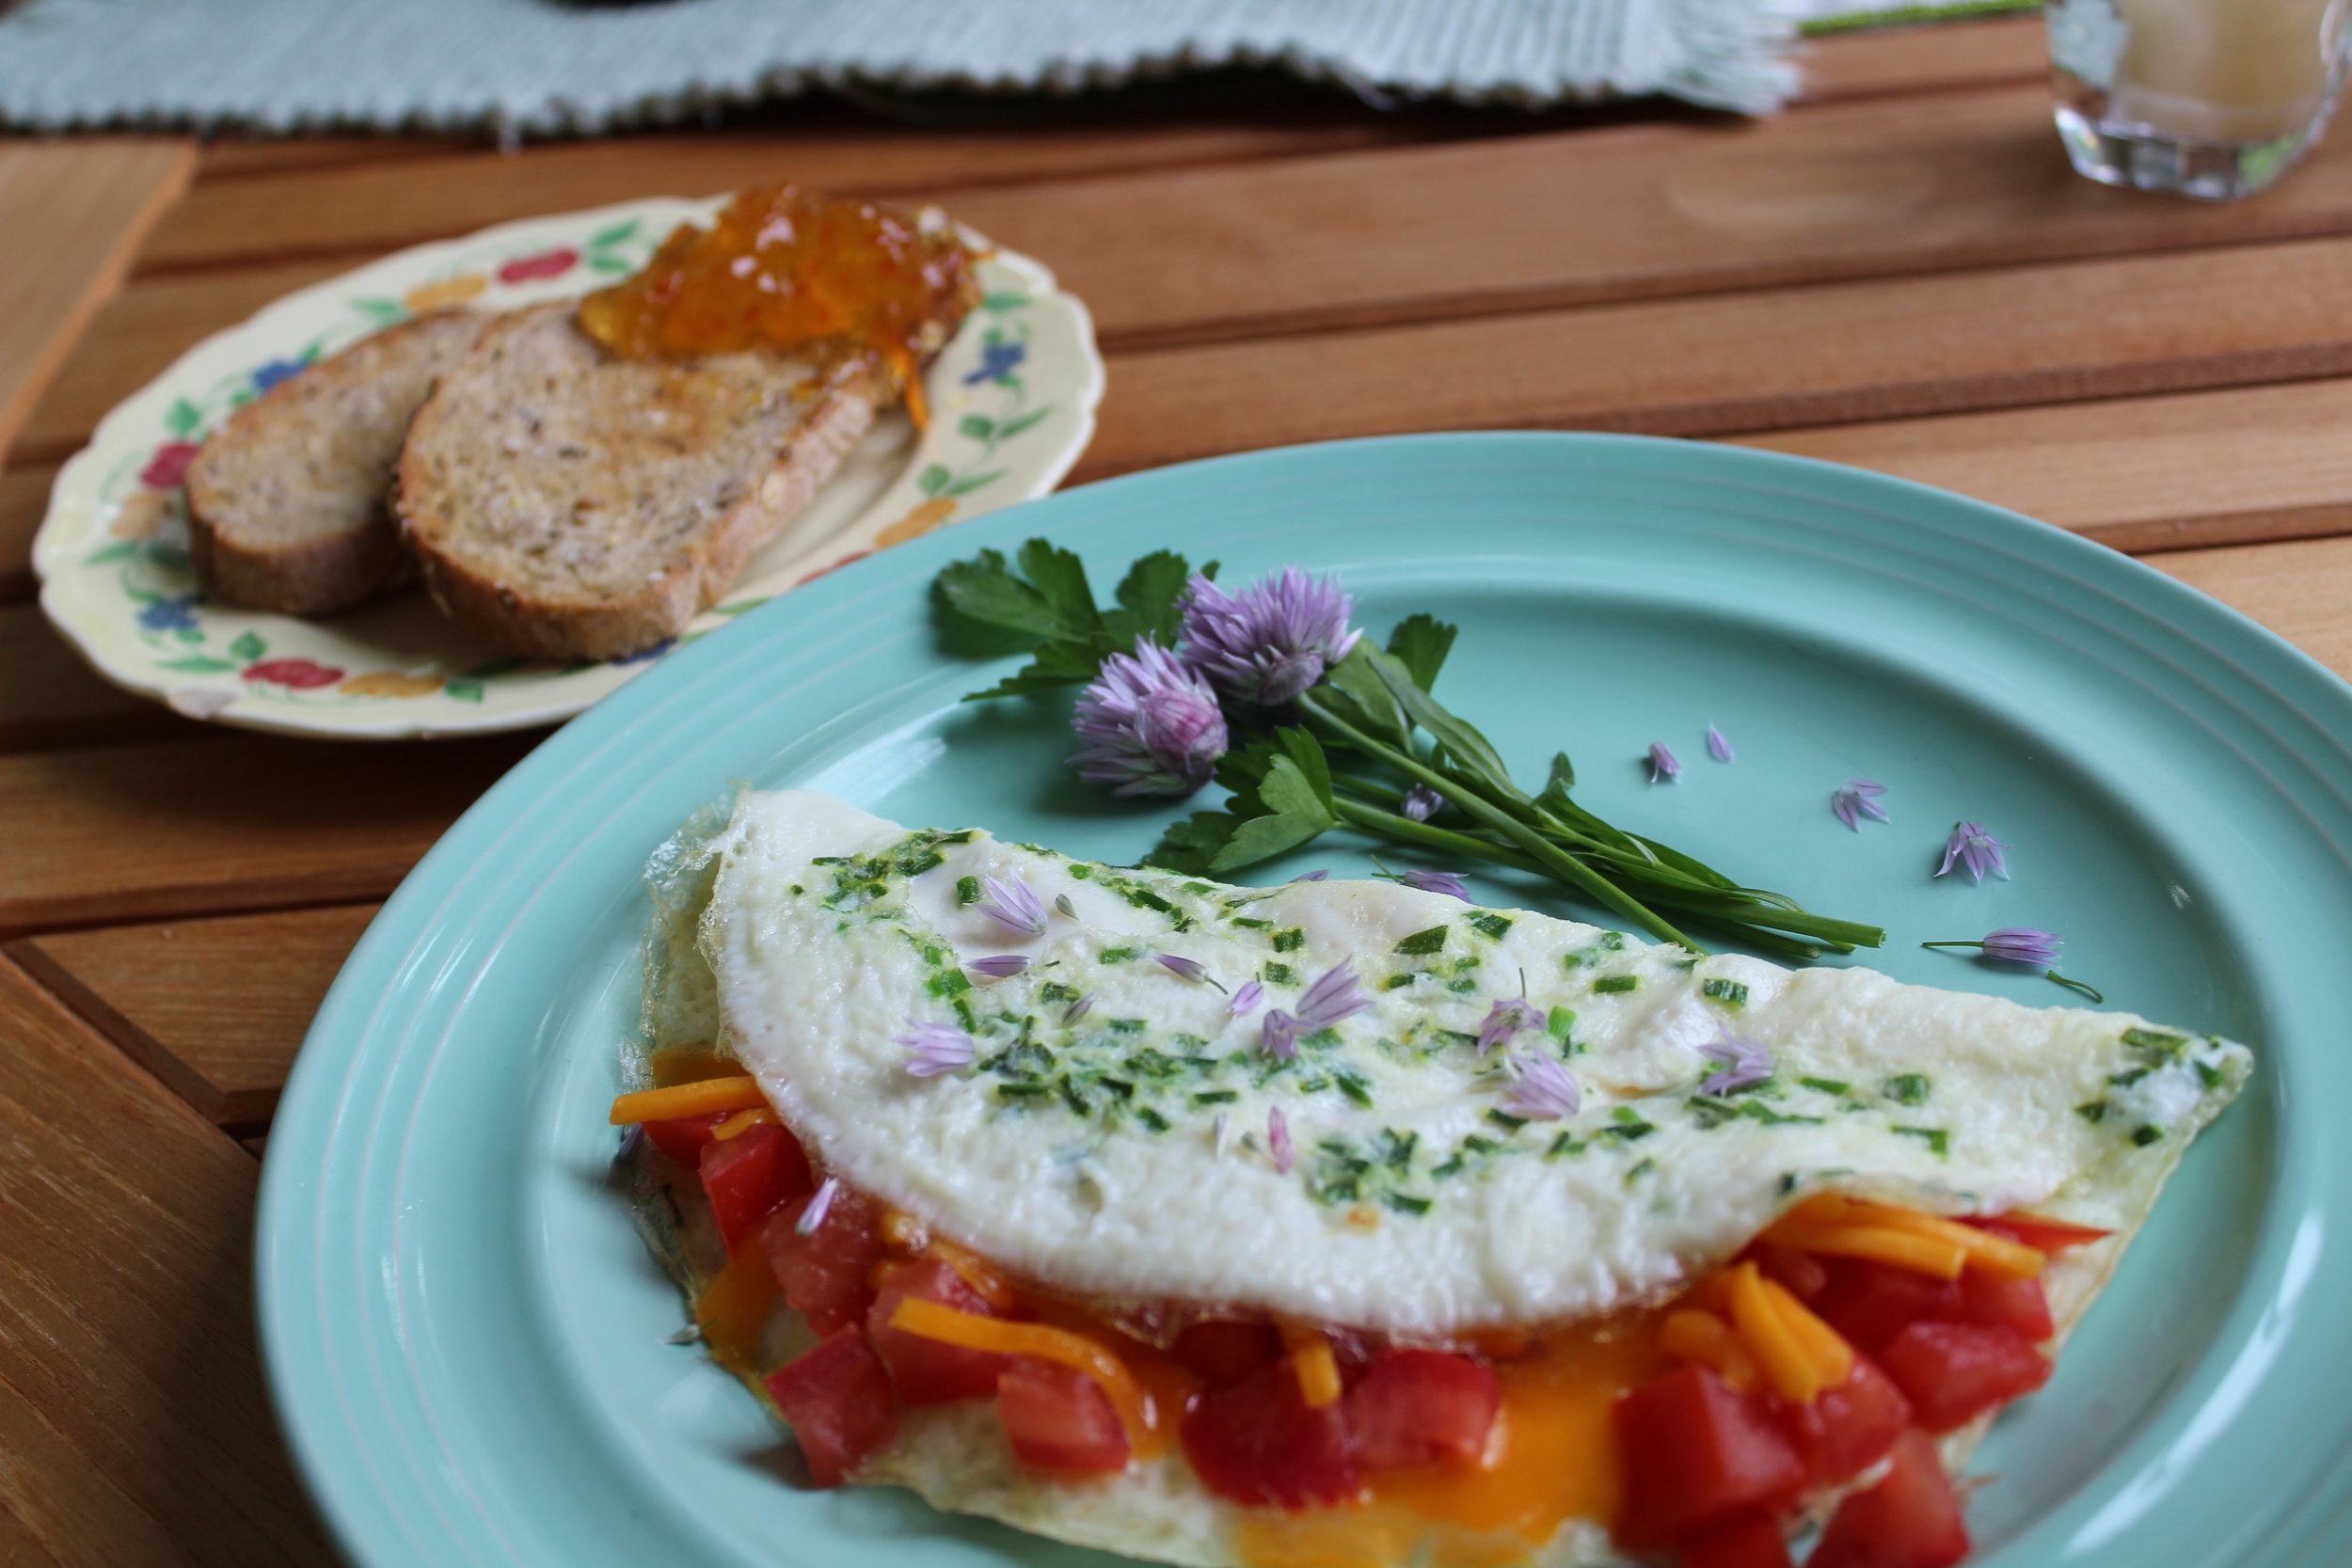 Chive and egg white omelet with tomatoes and cheddar